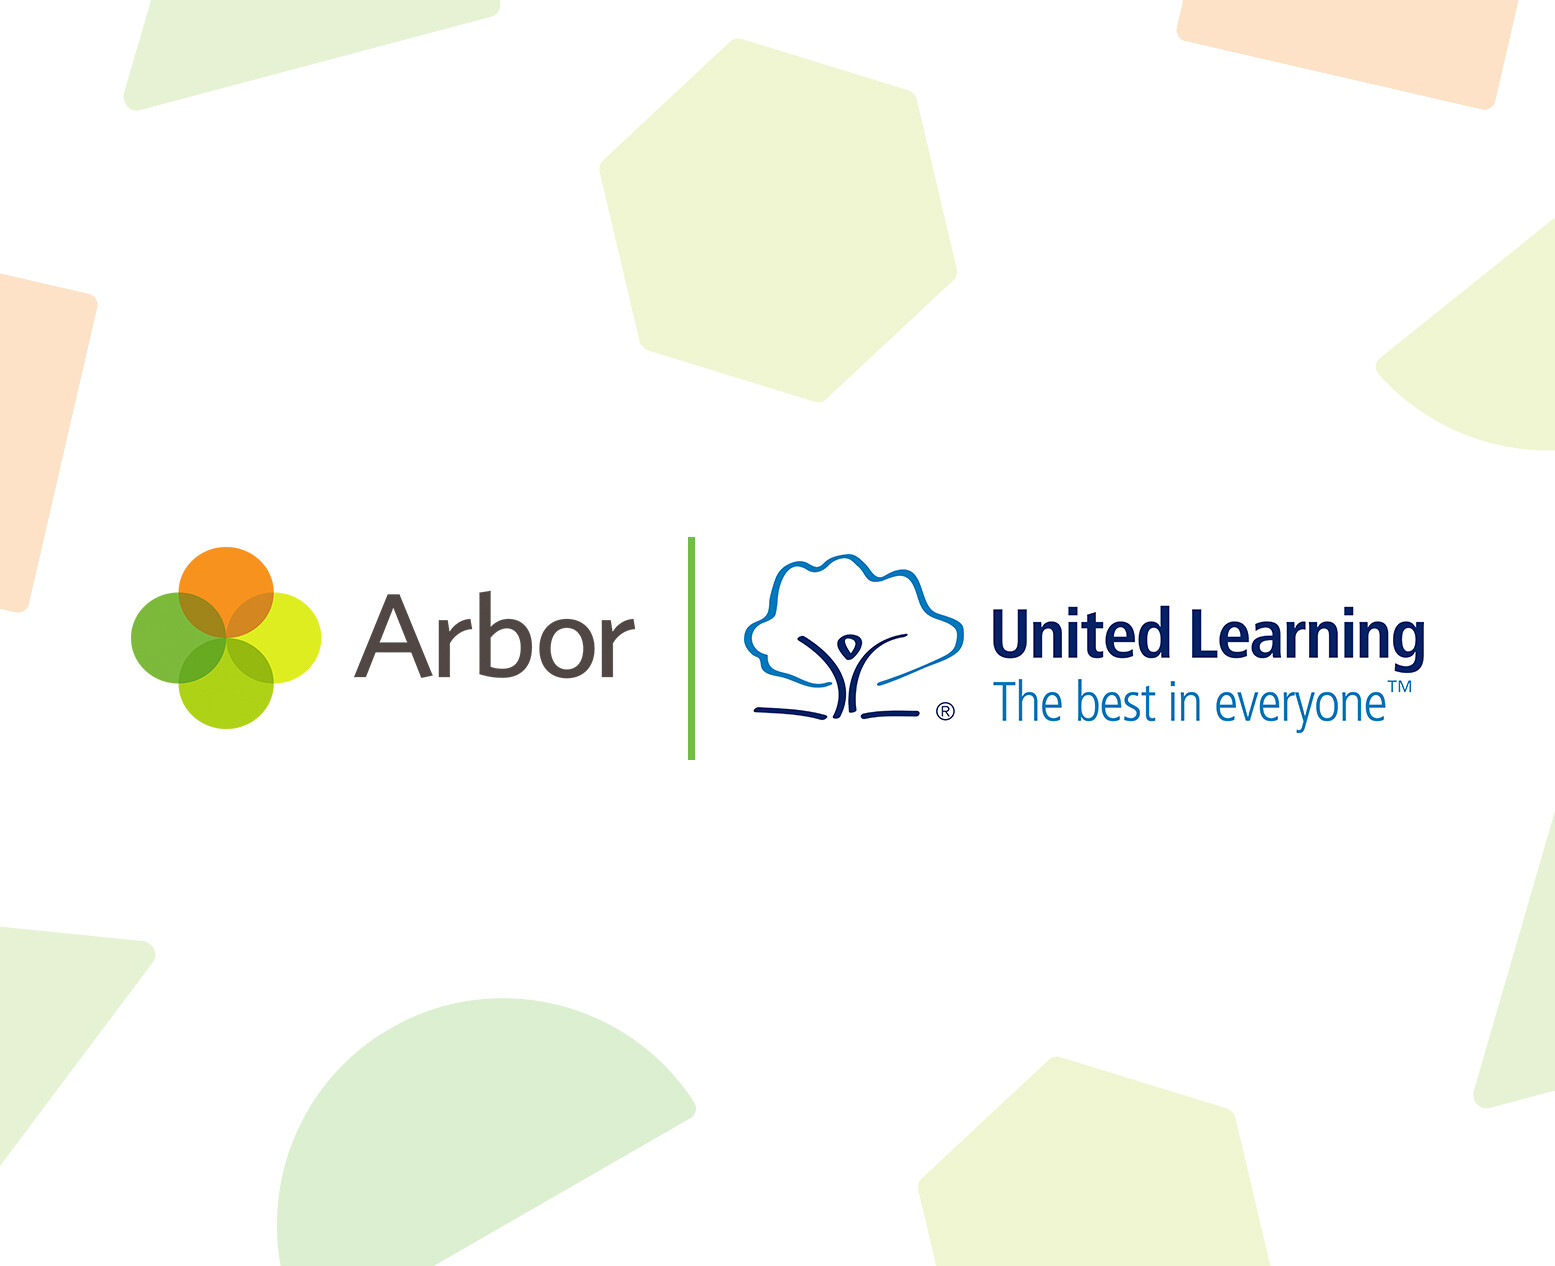 Arbor United Learning